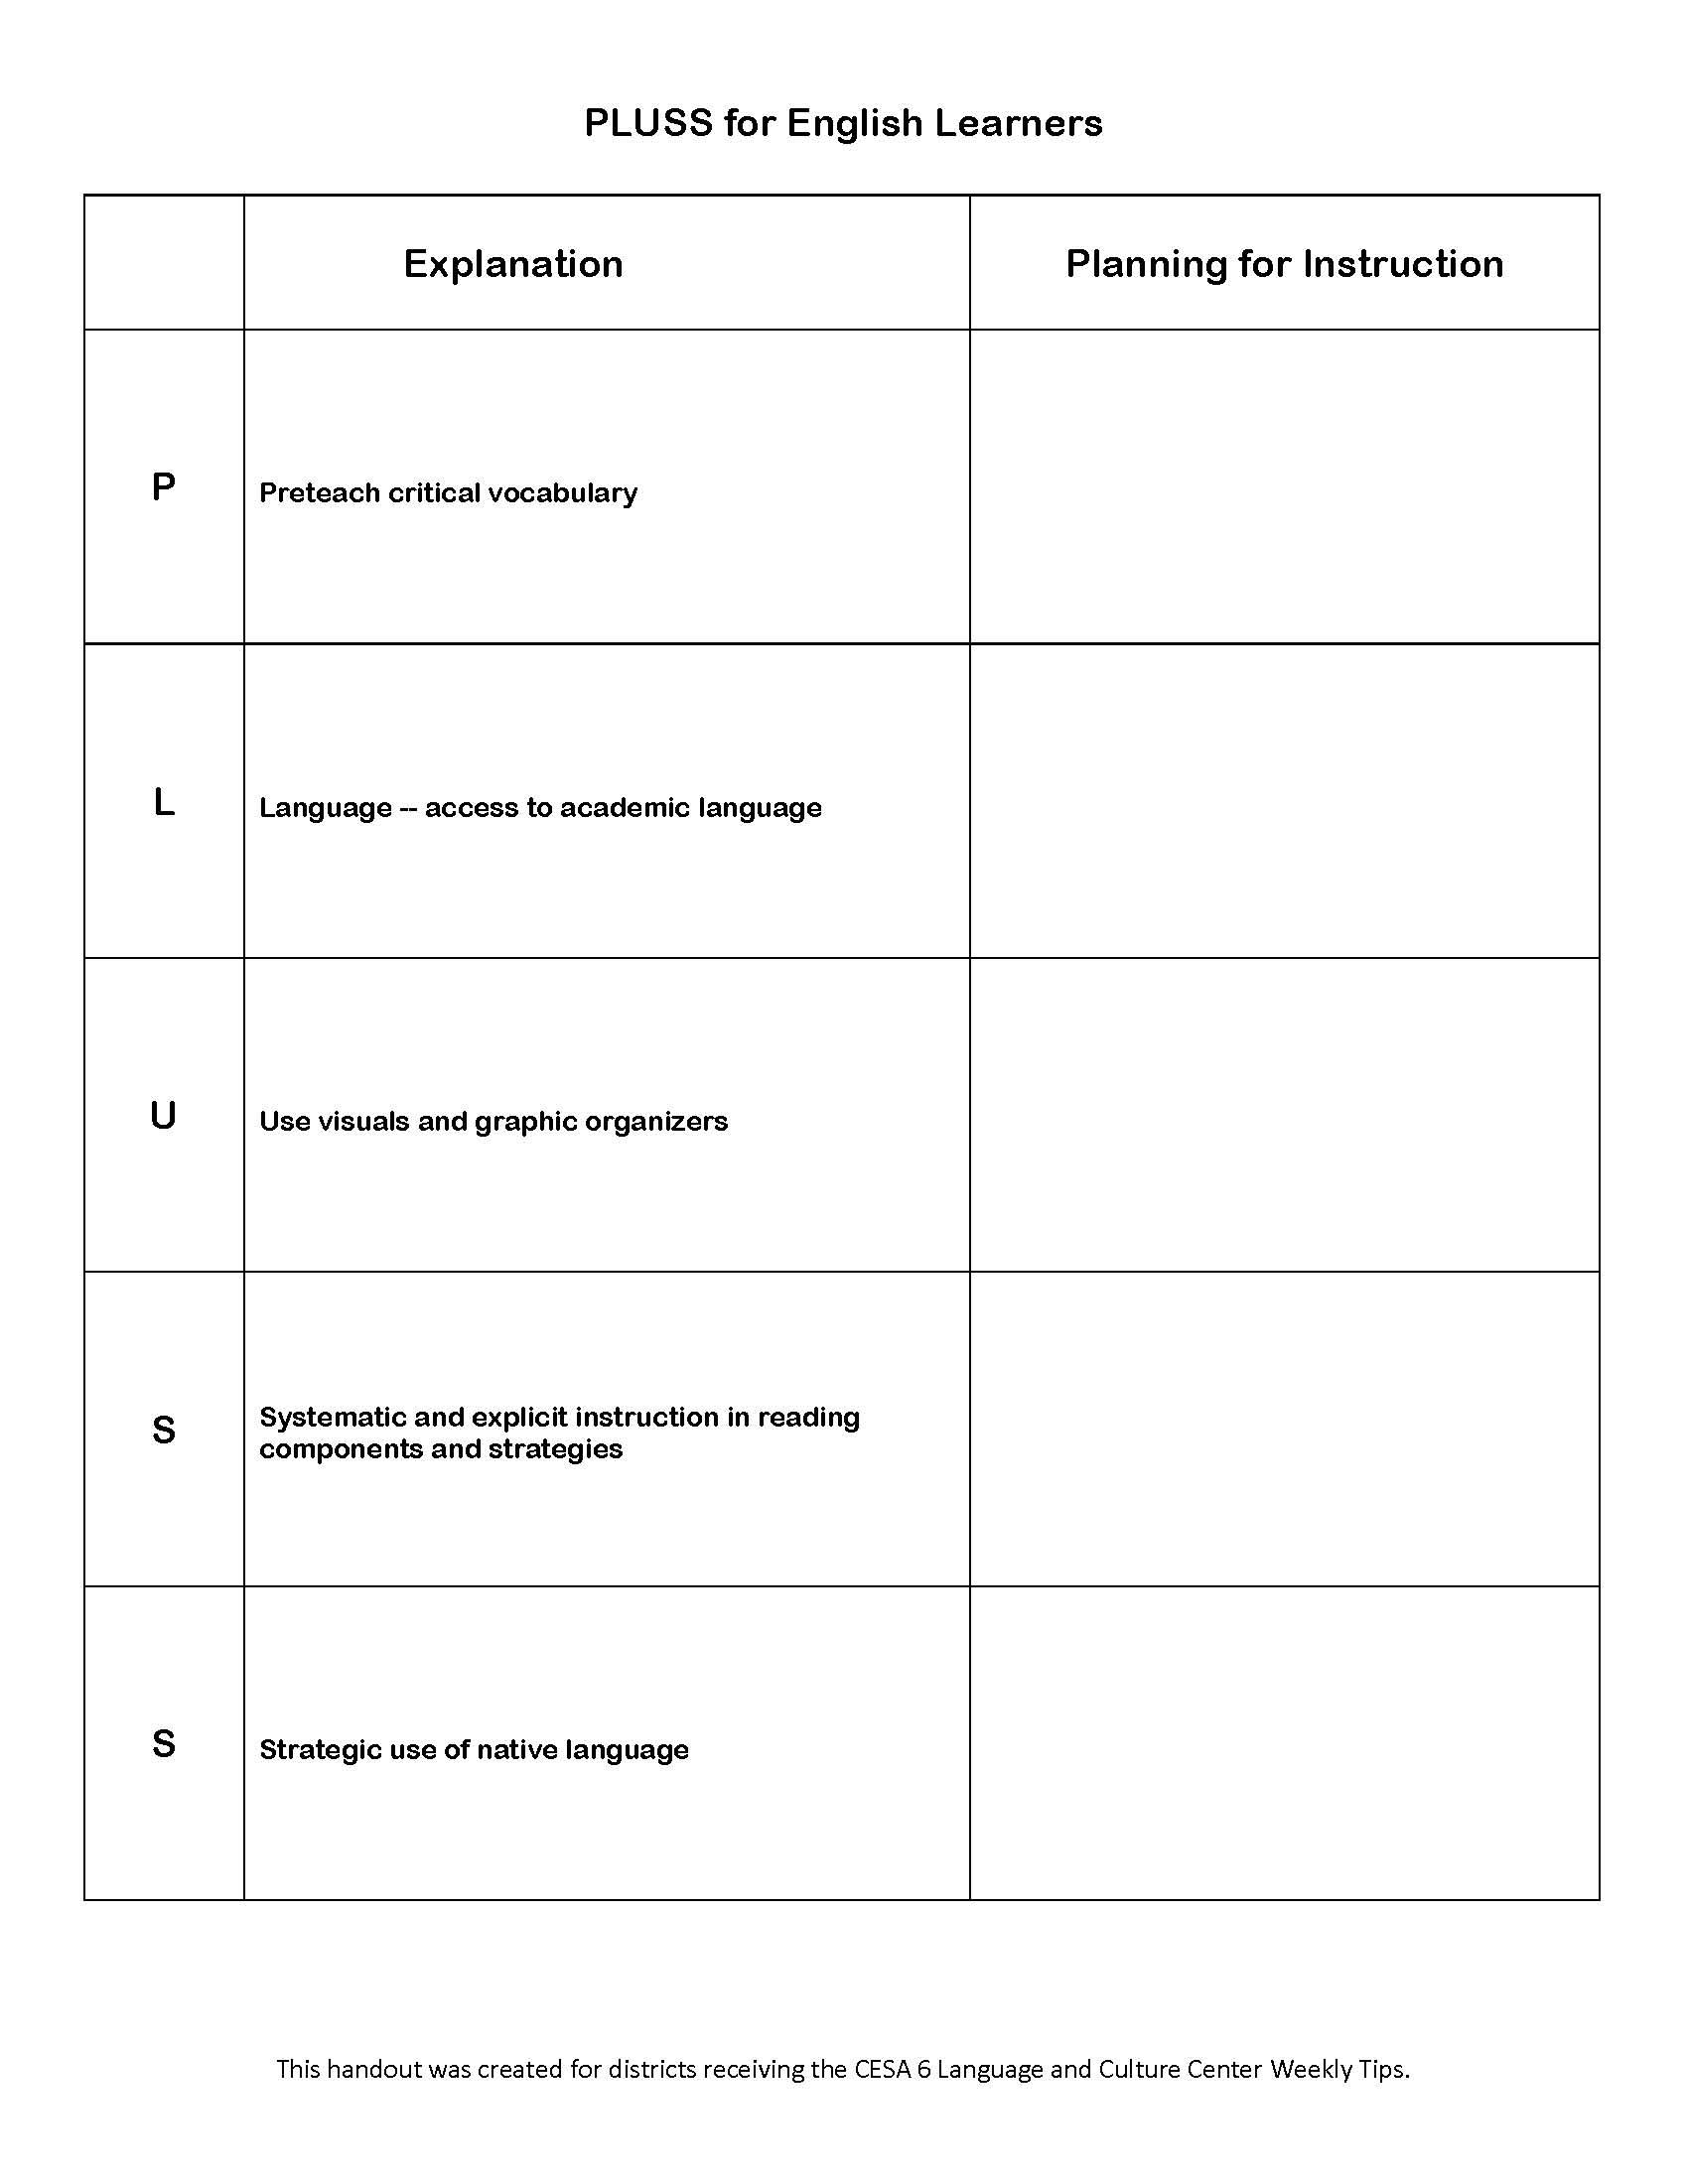 Pluss Planning Sheet Image Only